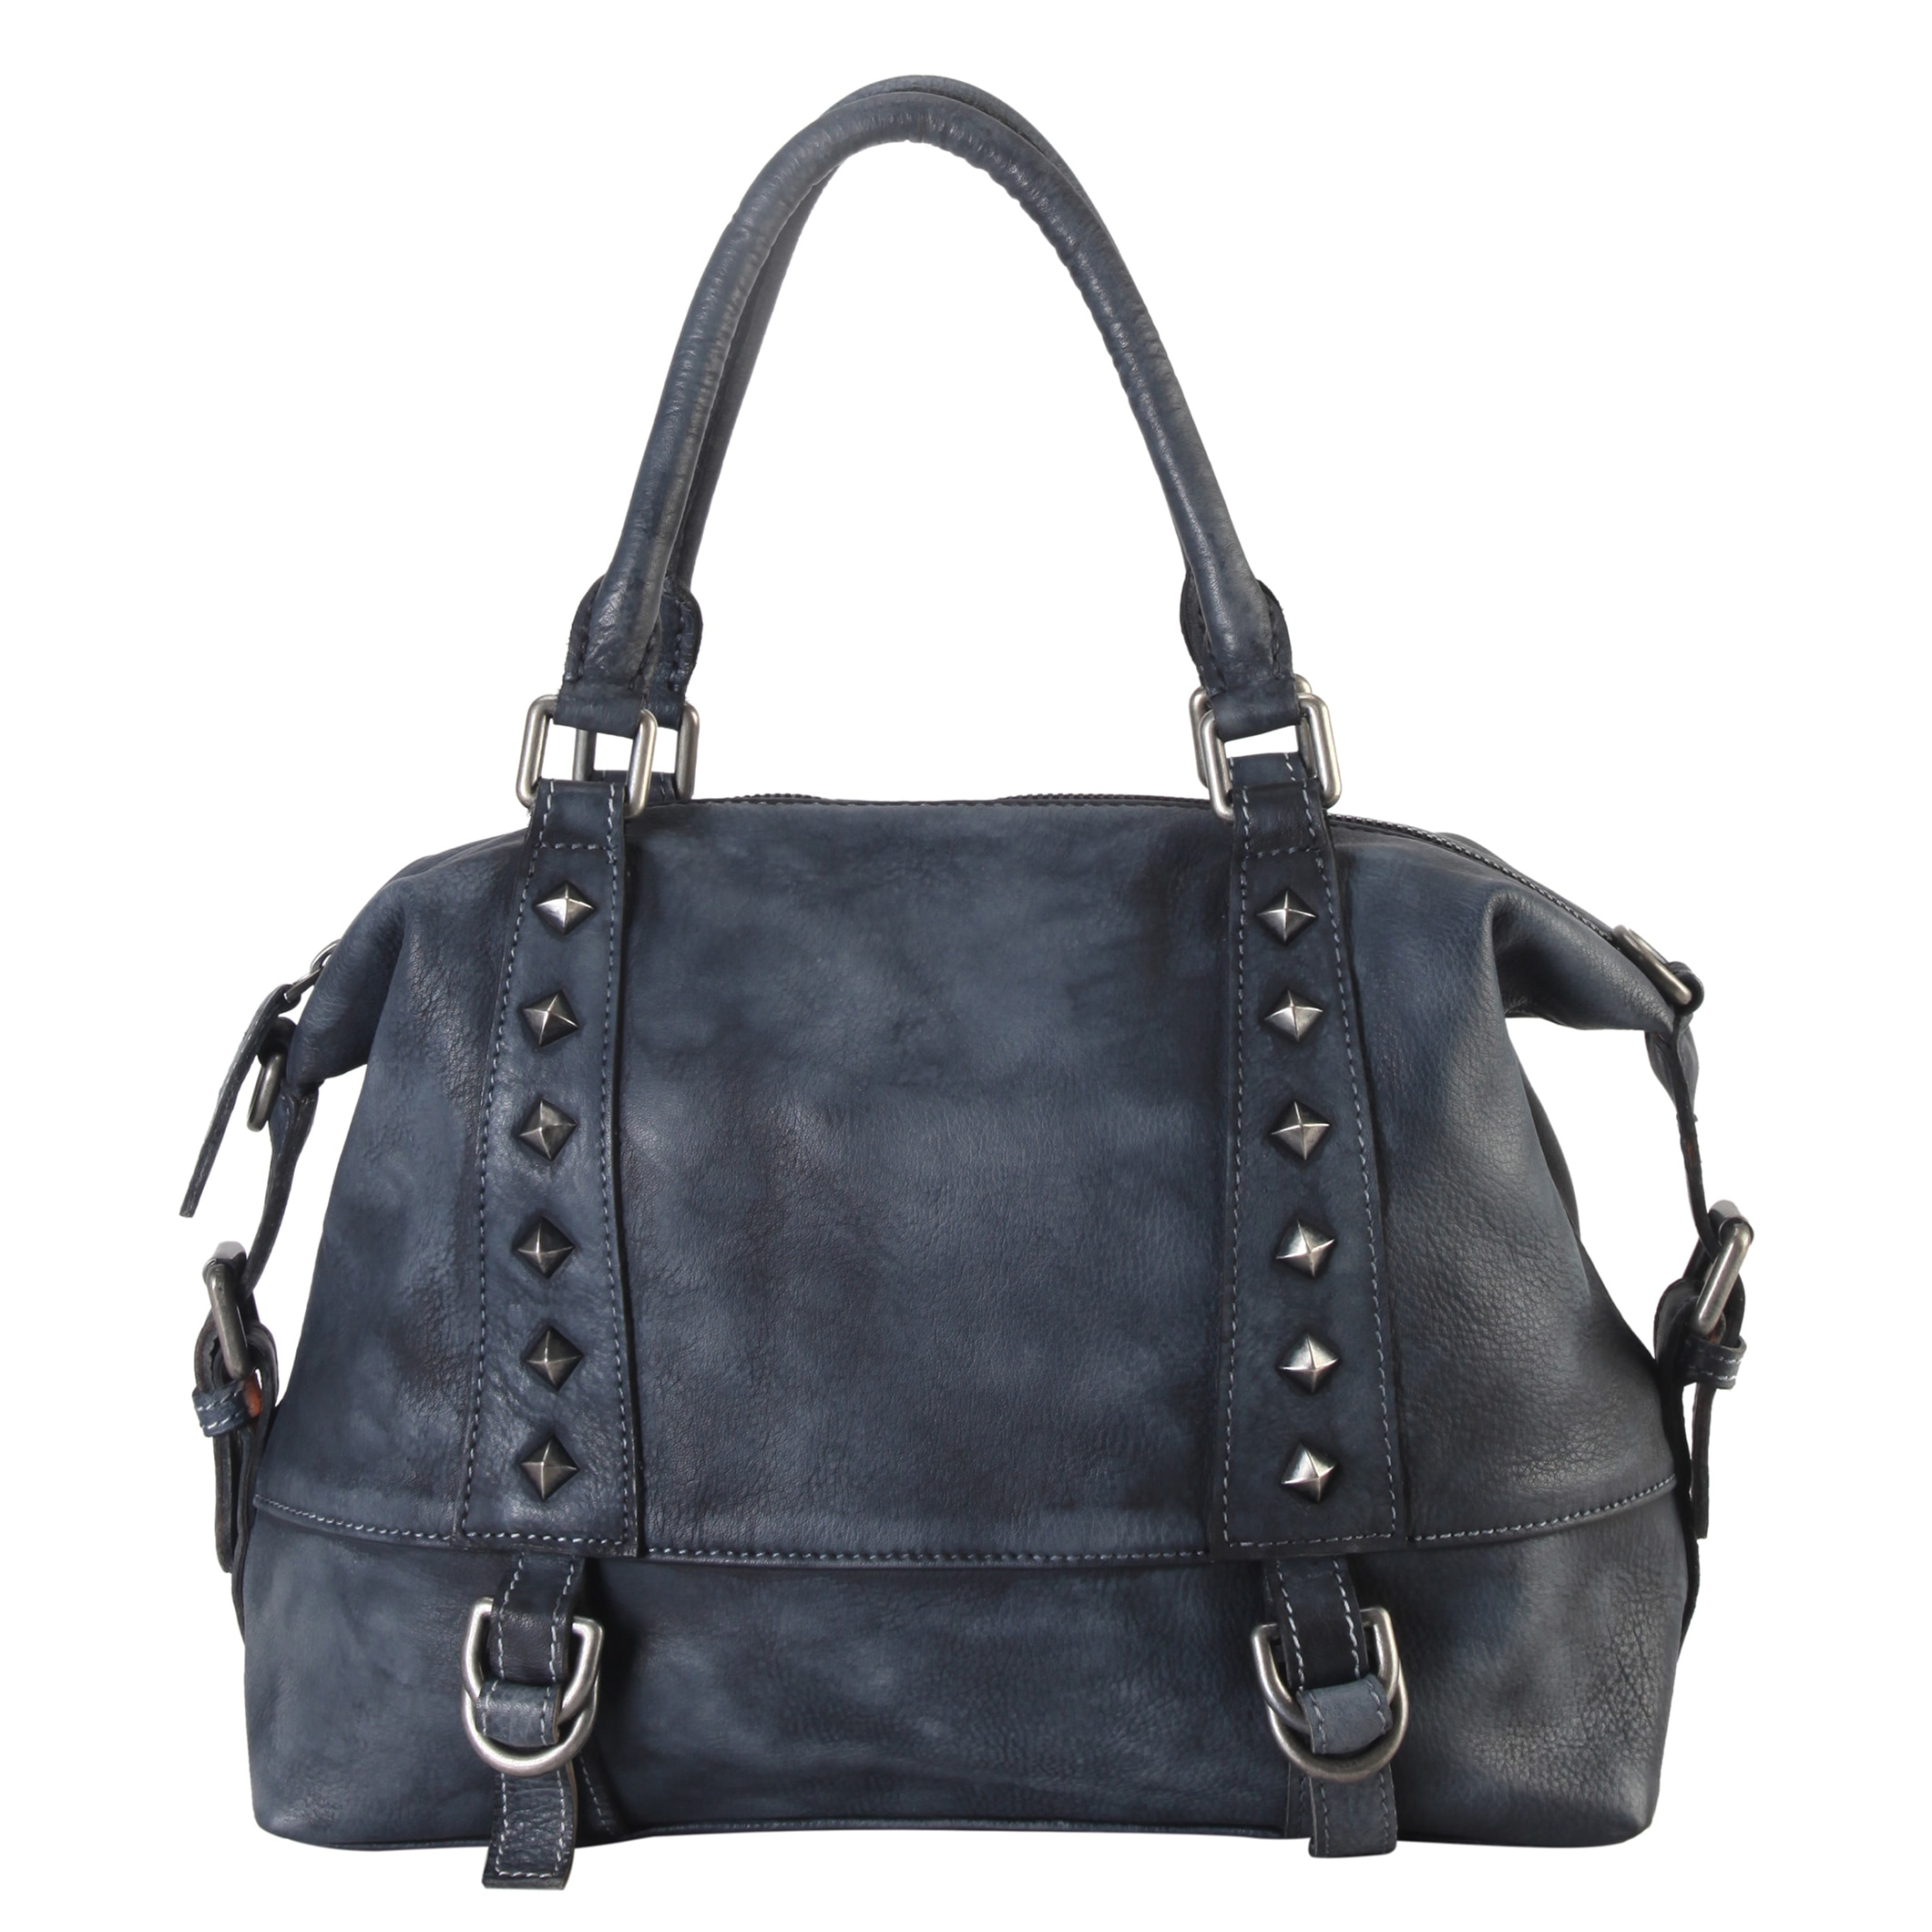 01d3e894a418 Diophy Genuine Leather Medium Tote Accented with Studded & Buckle Decor  with Removable Strap 150335